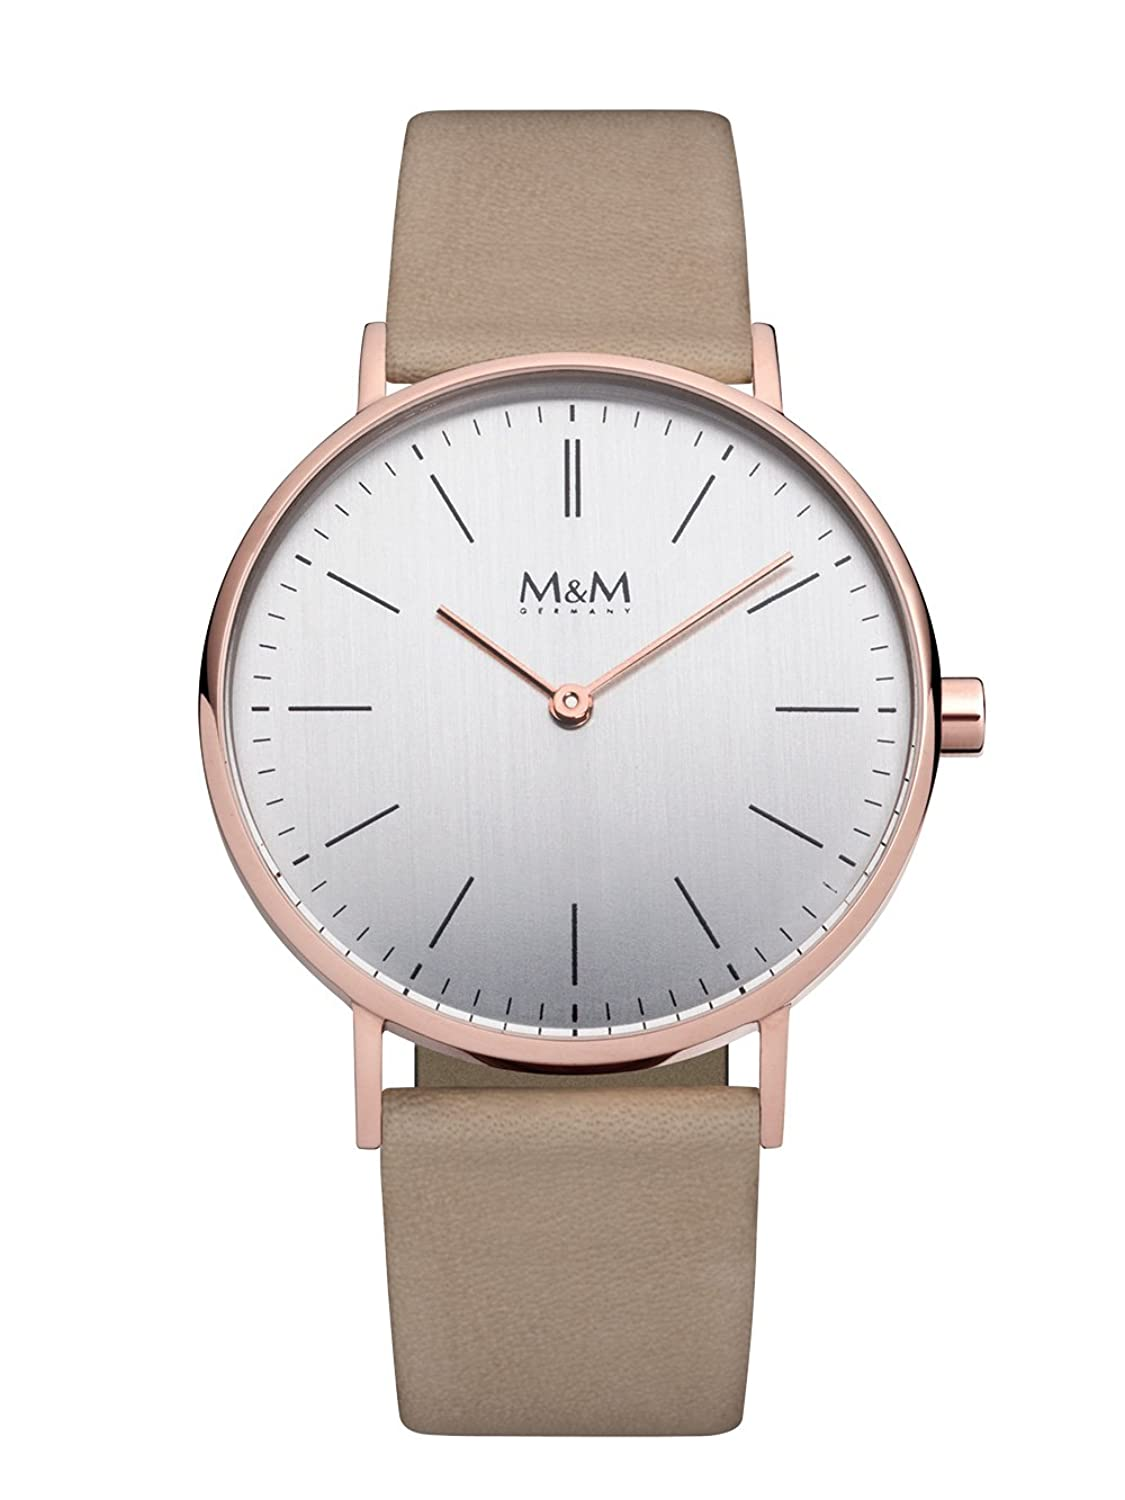 M&M Damenuhr Lederband M11892-992 Best Basic RosÉgold plattiert